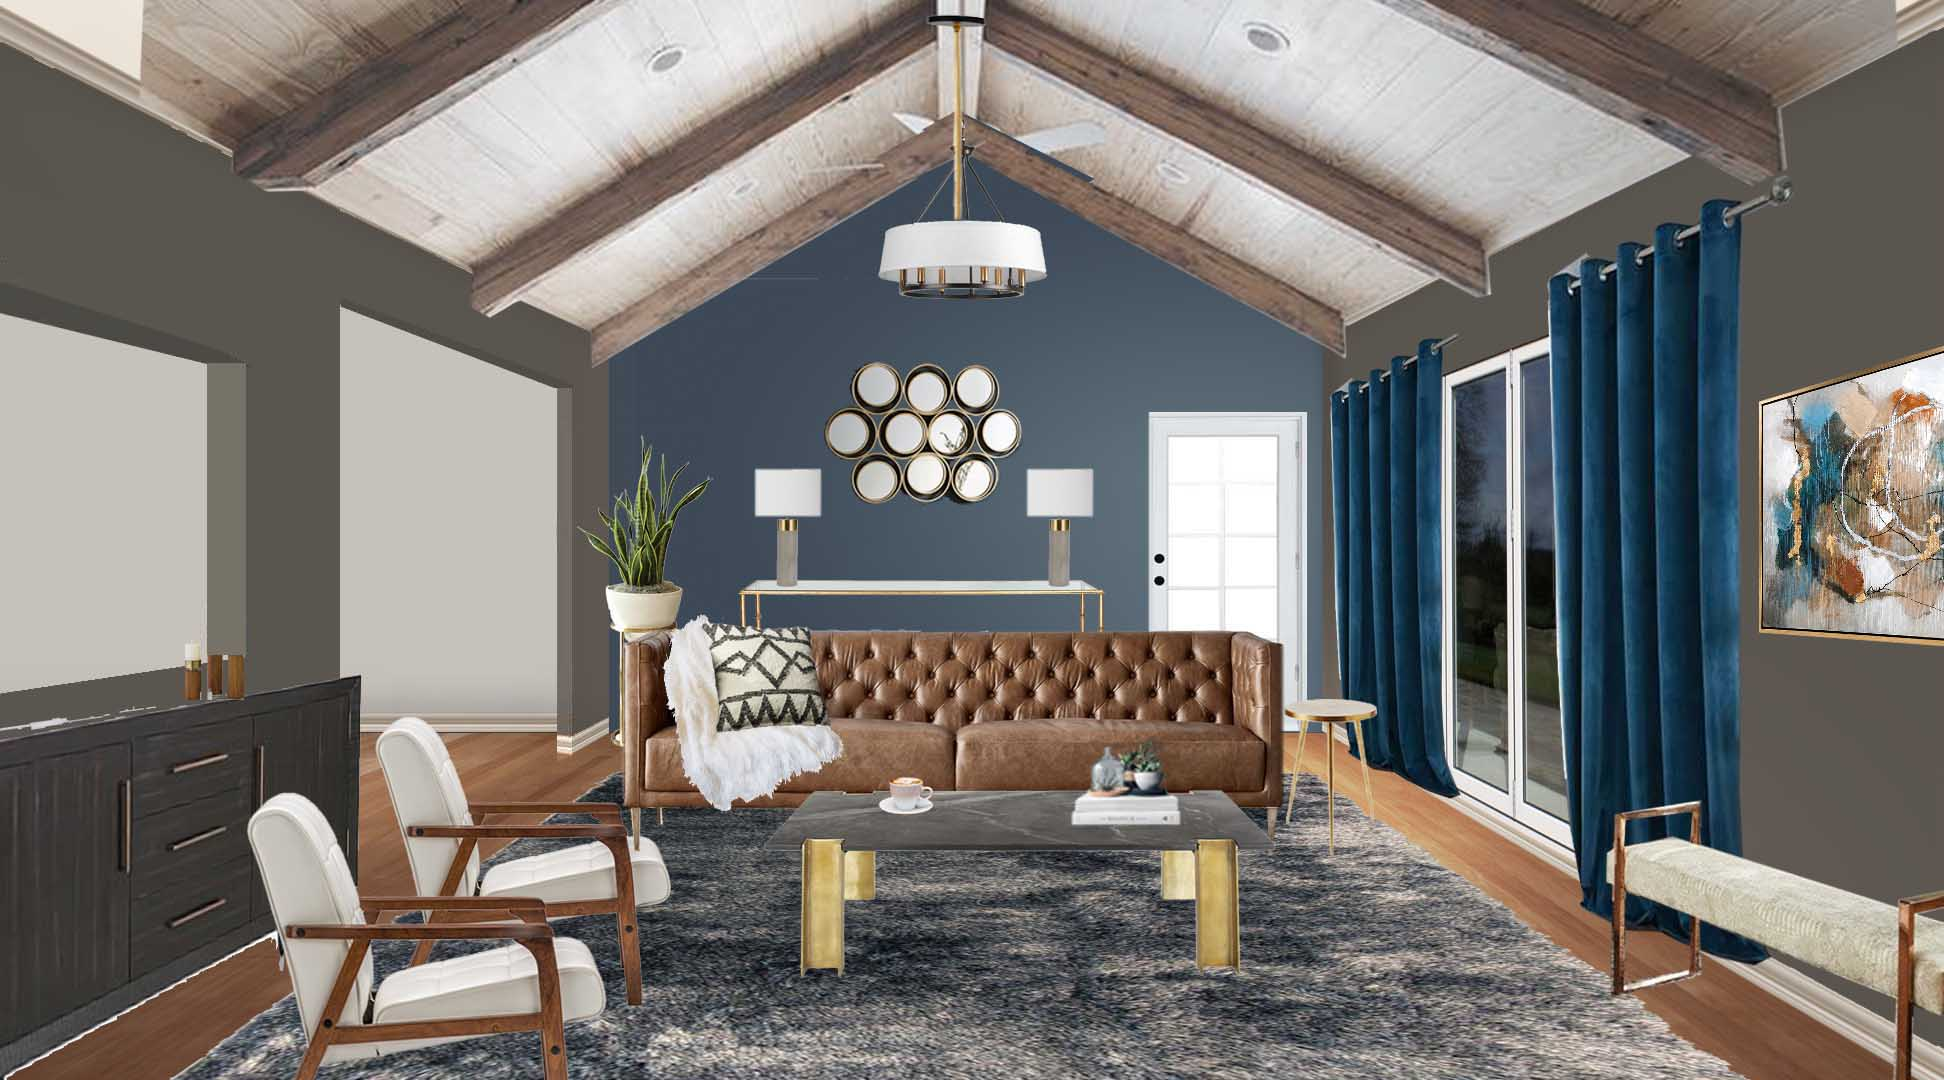 Learn How To Use Photoshop For Interior Designers Online